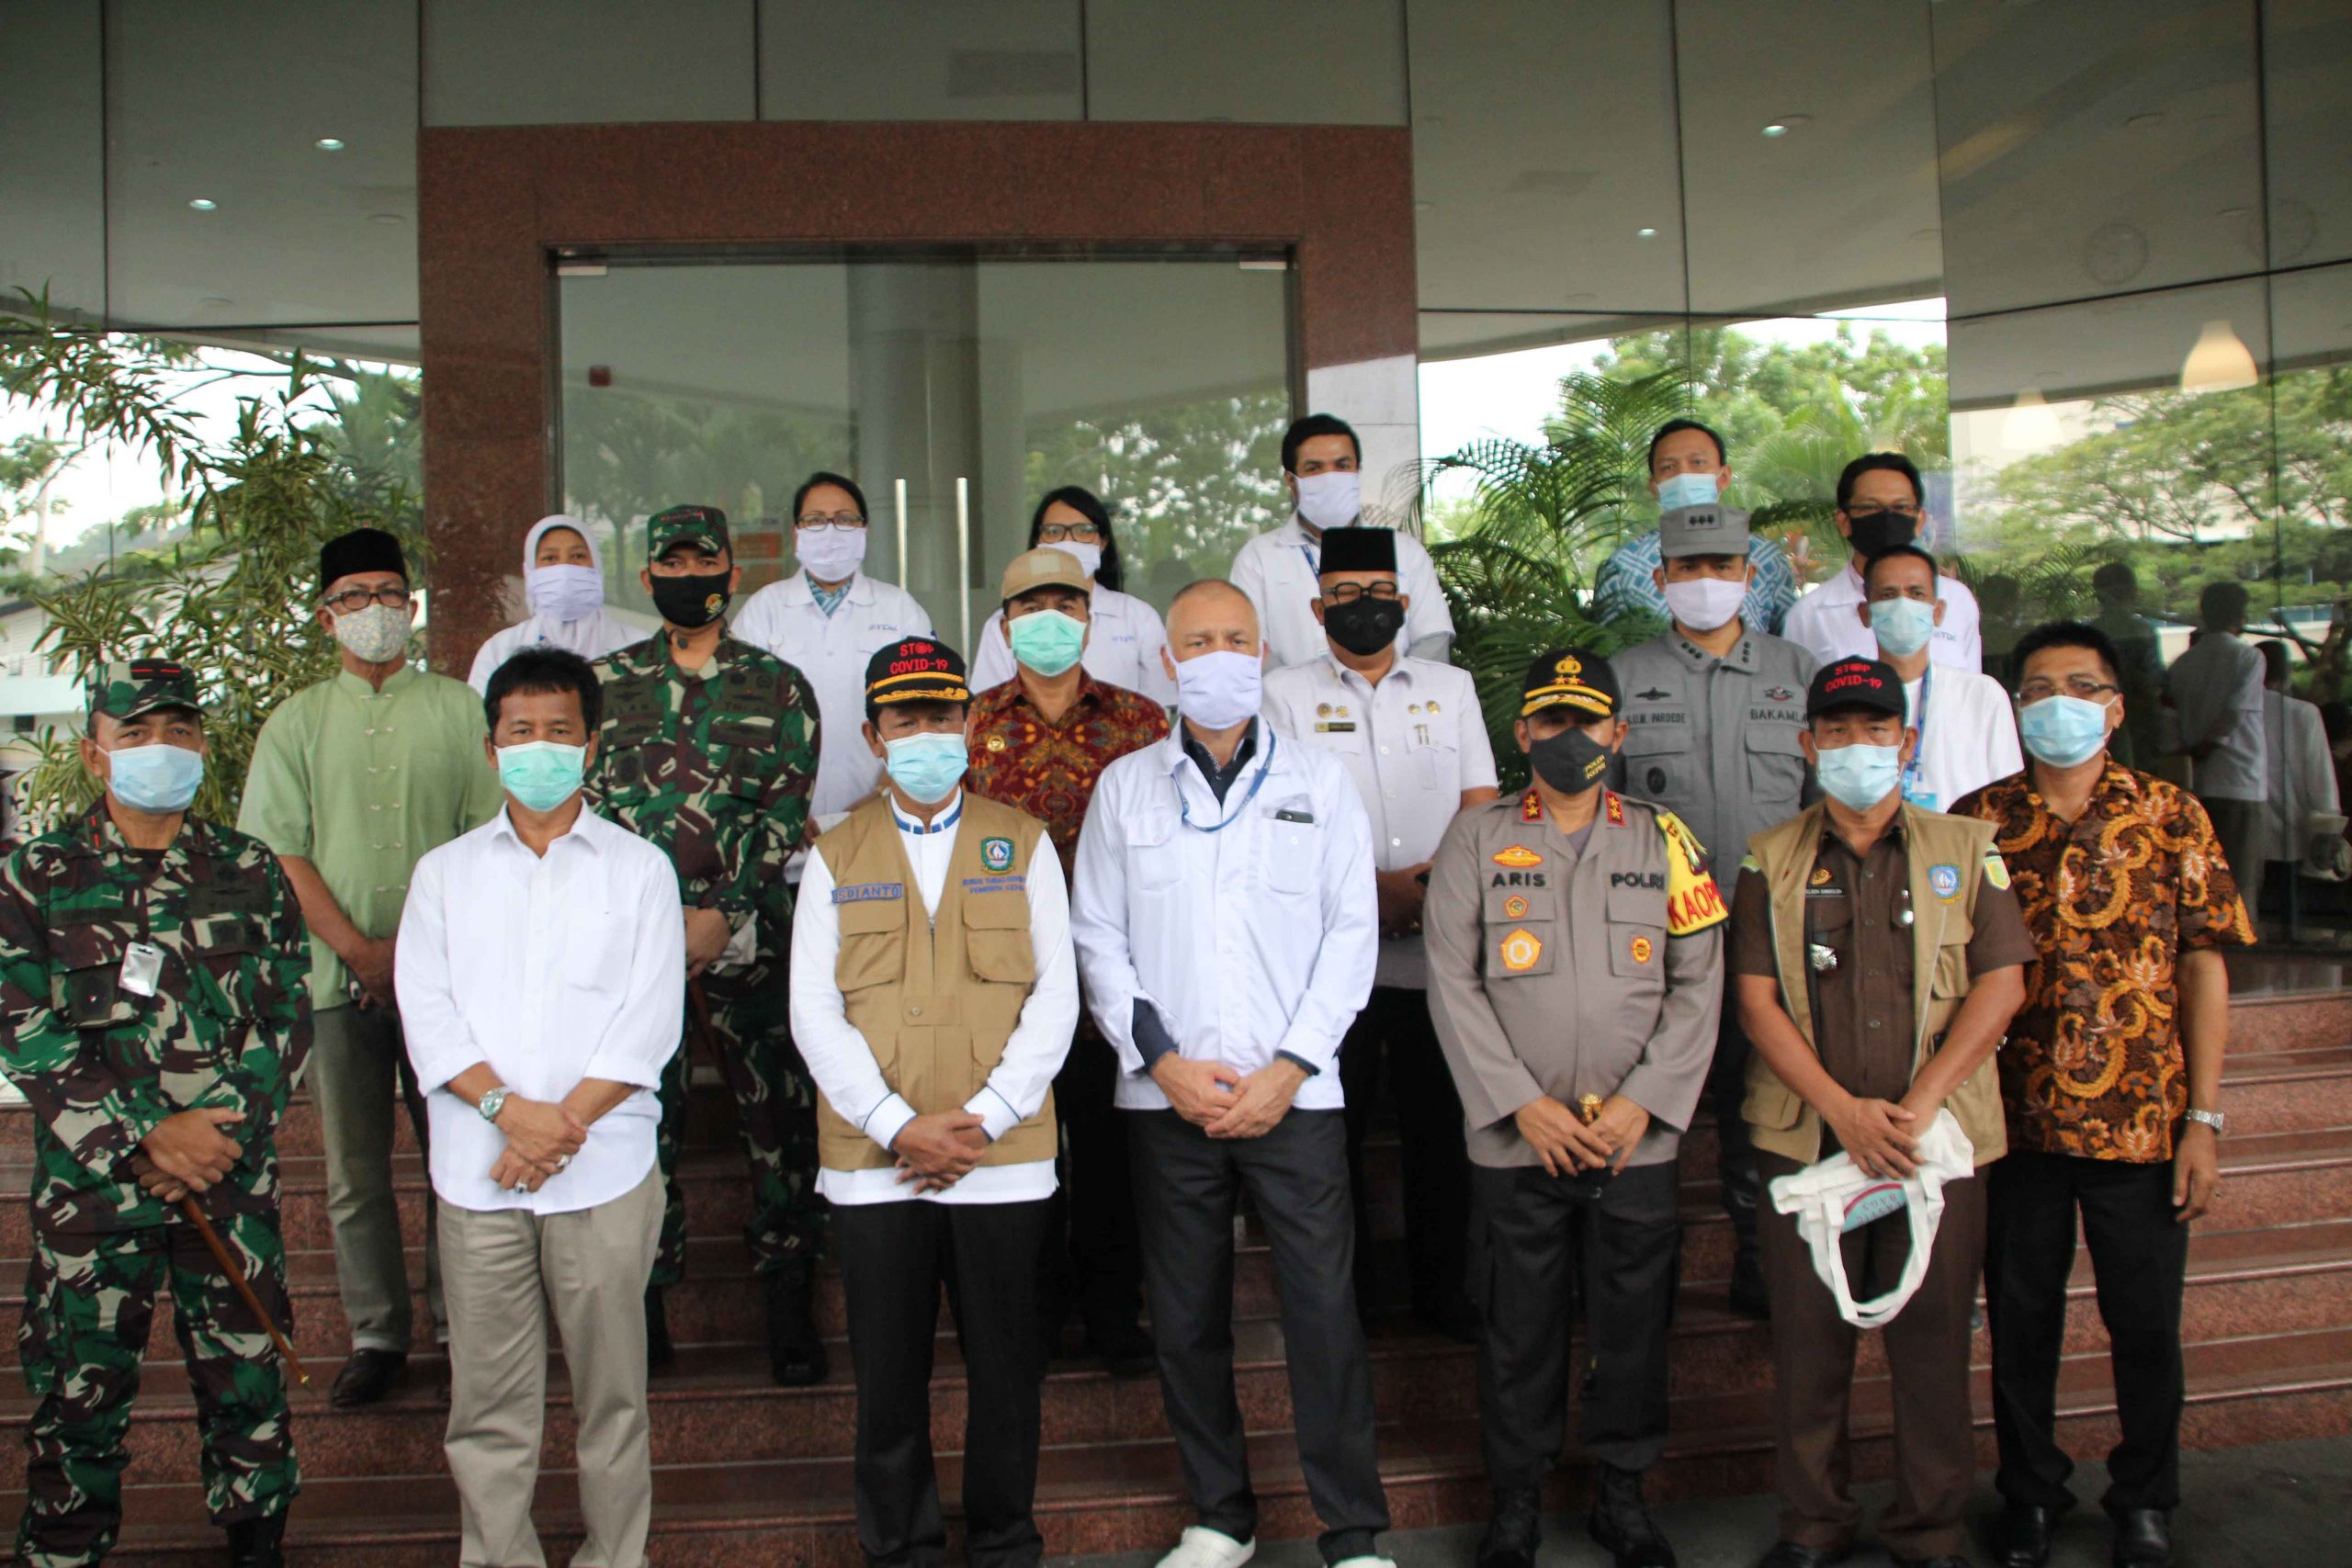 THE GOVERNOR OF RIAU ISLANDS REVIEWED THE NEW NORMAL HEALTH PROTOCOL